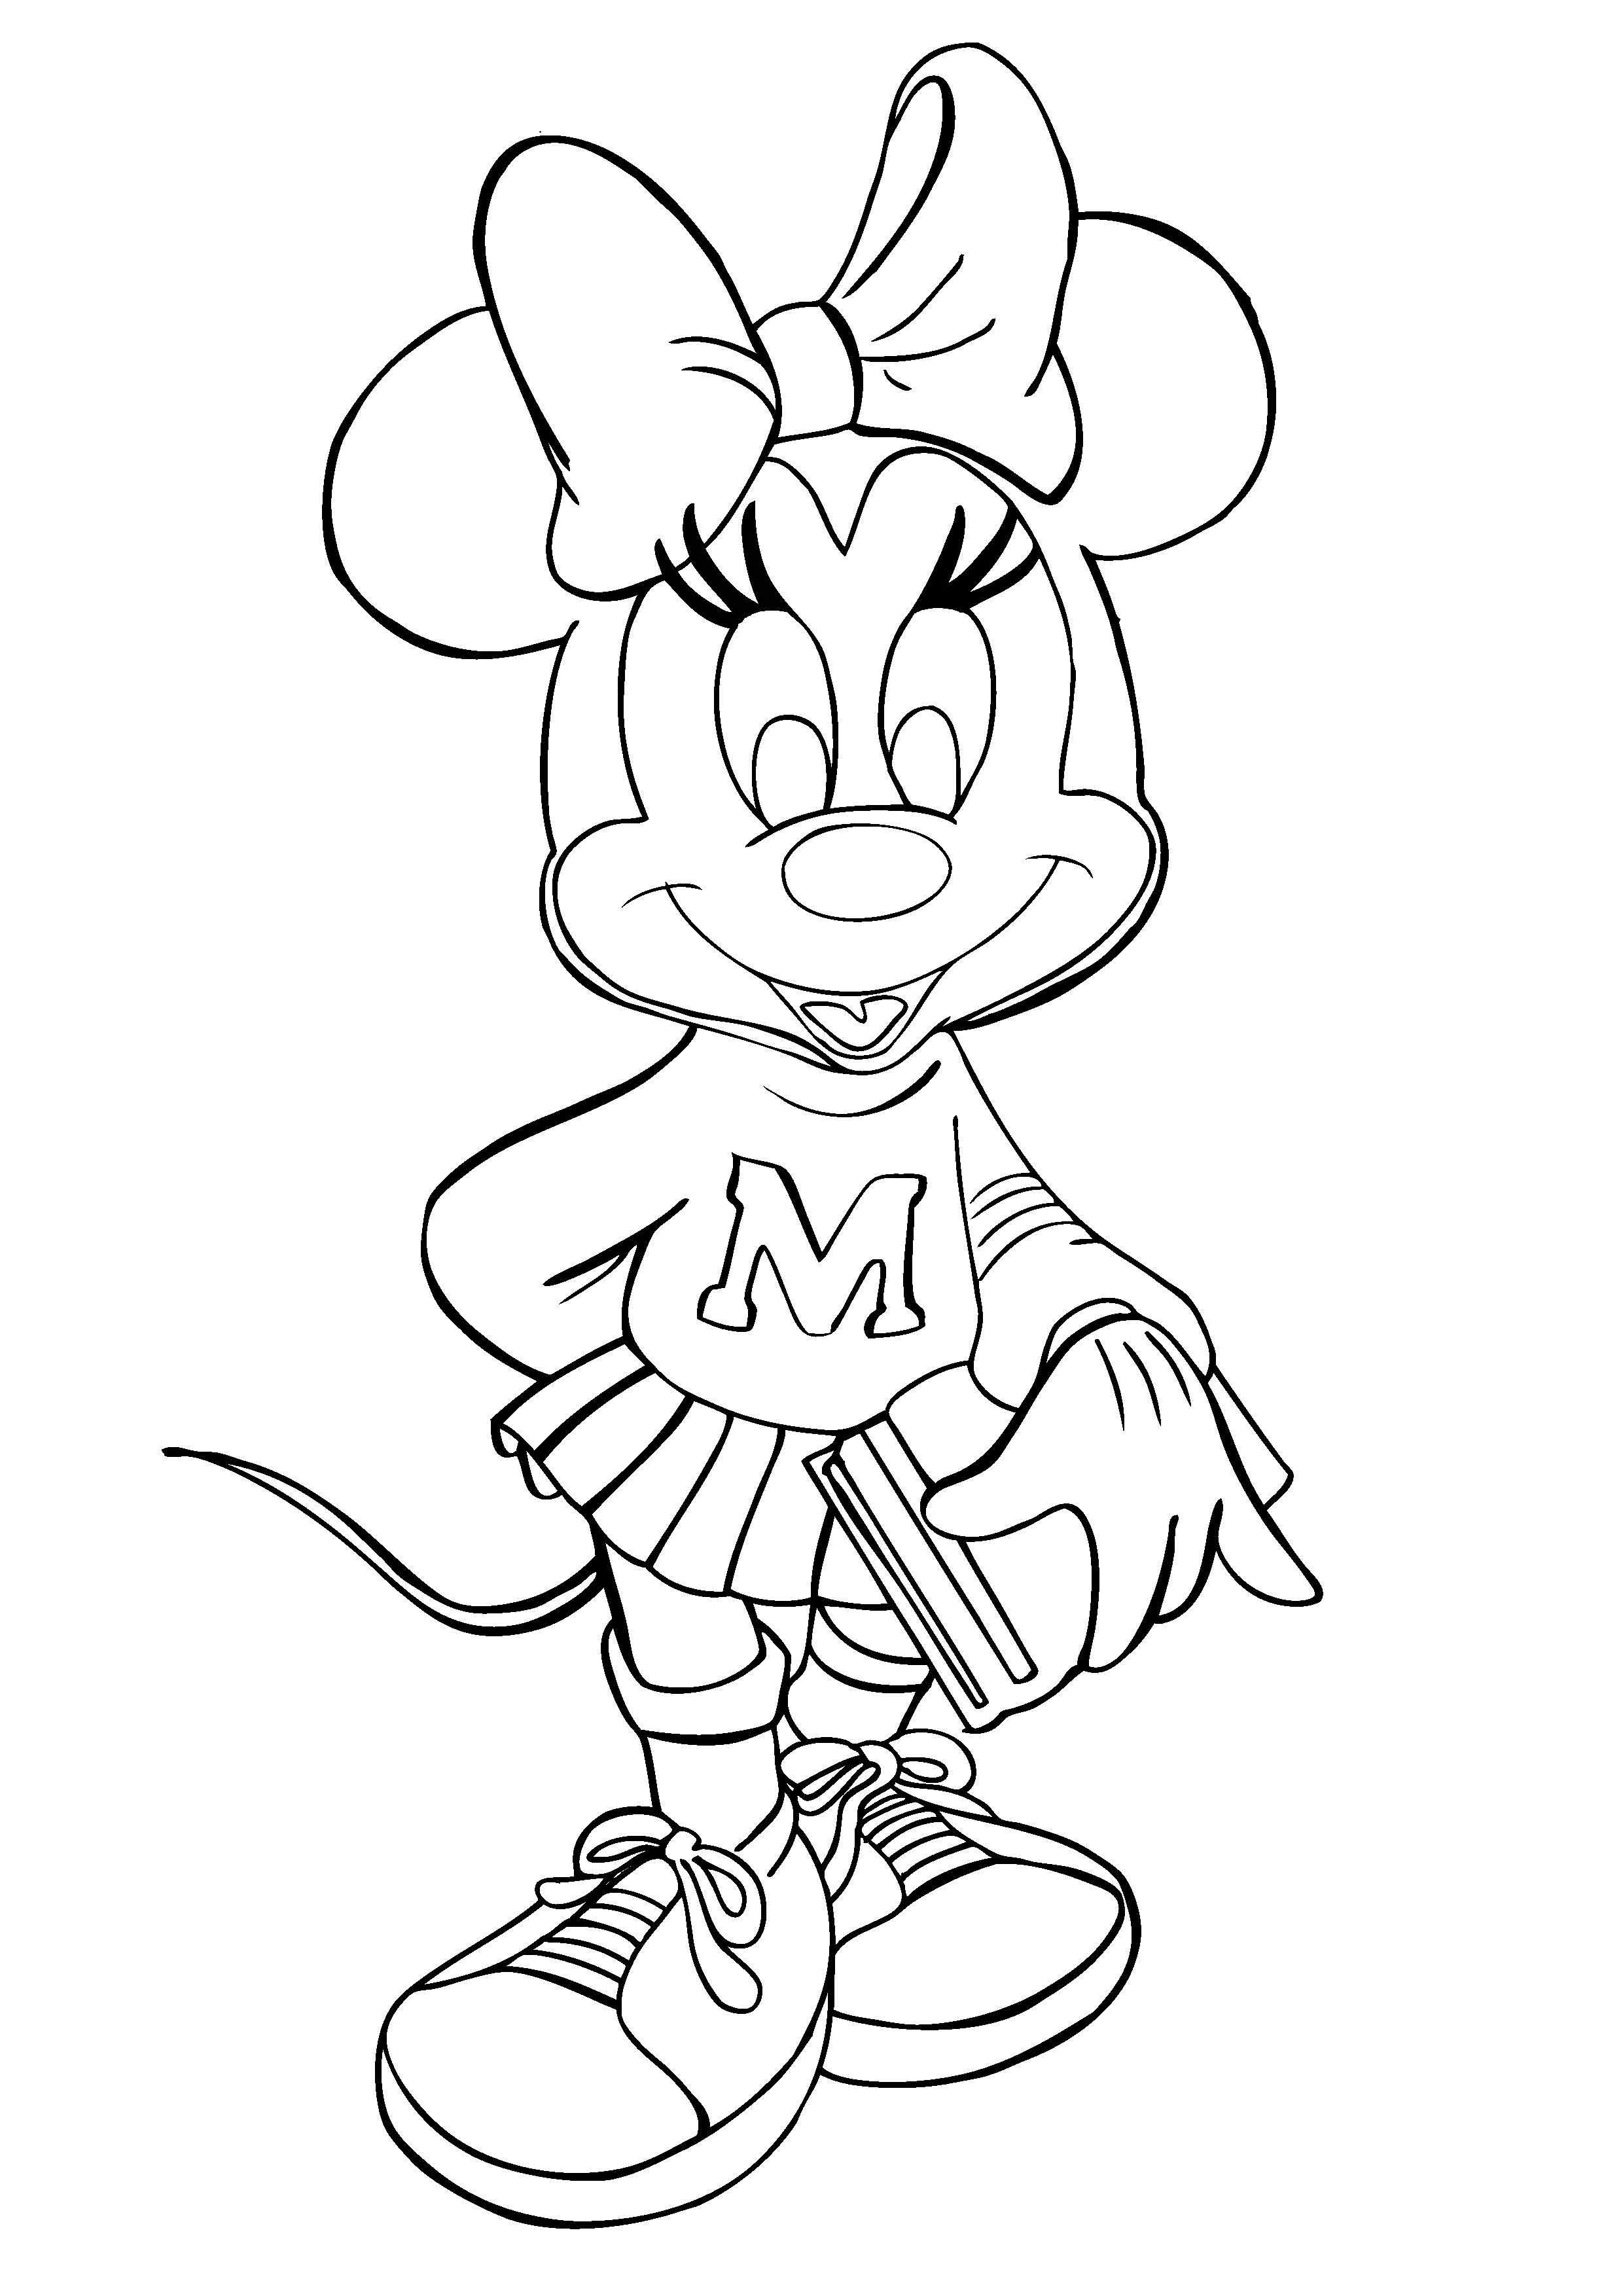 Free printable minnie mouse coloring pages for news to gow